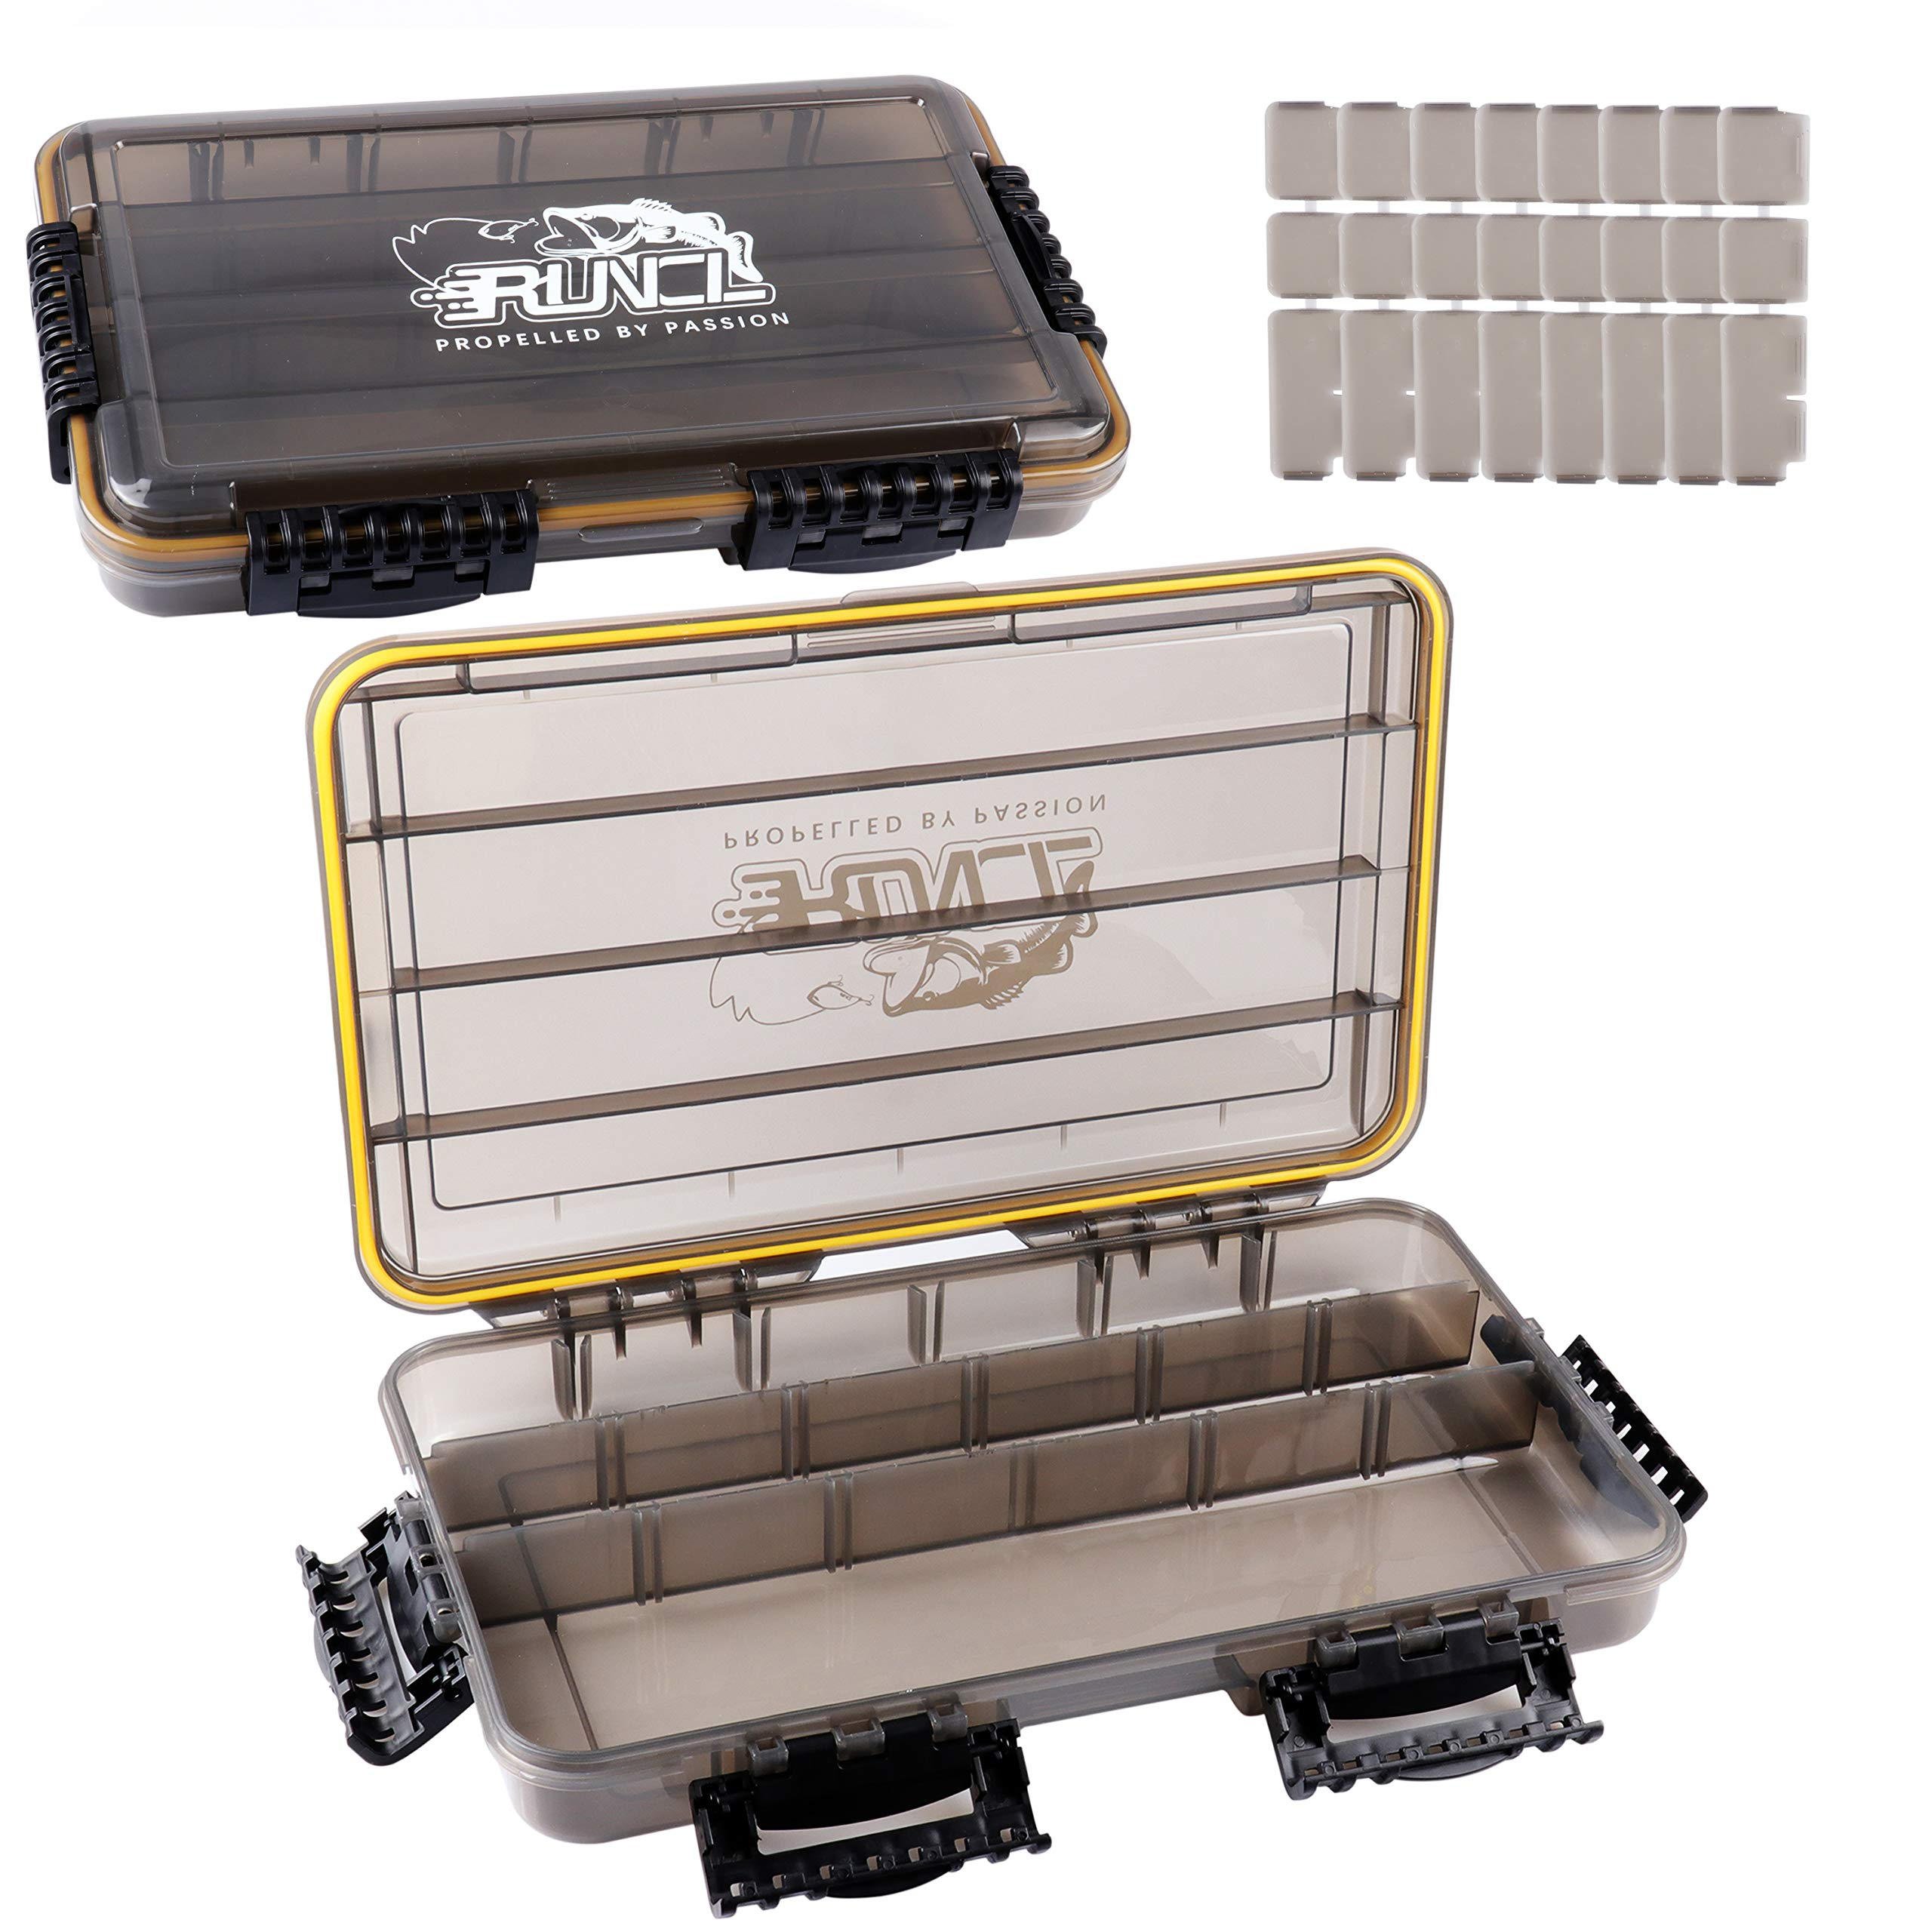 RUNCL Fishing Tackle Box, Waterproof Storage 14'' L x 8.65'' W x 2.15'' H - Thicker Frame, 360° Waterproof Seal, Secure-Locking Latches, Sun Protection, Removable Dividers - Storage Organizer (Pack of 2) by RUNCL